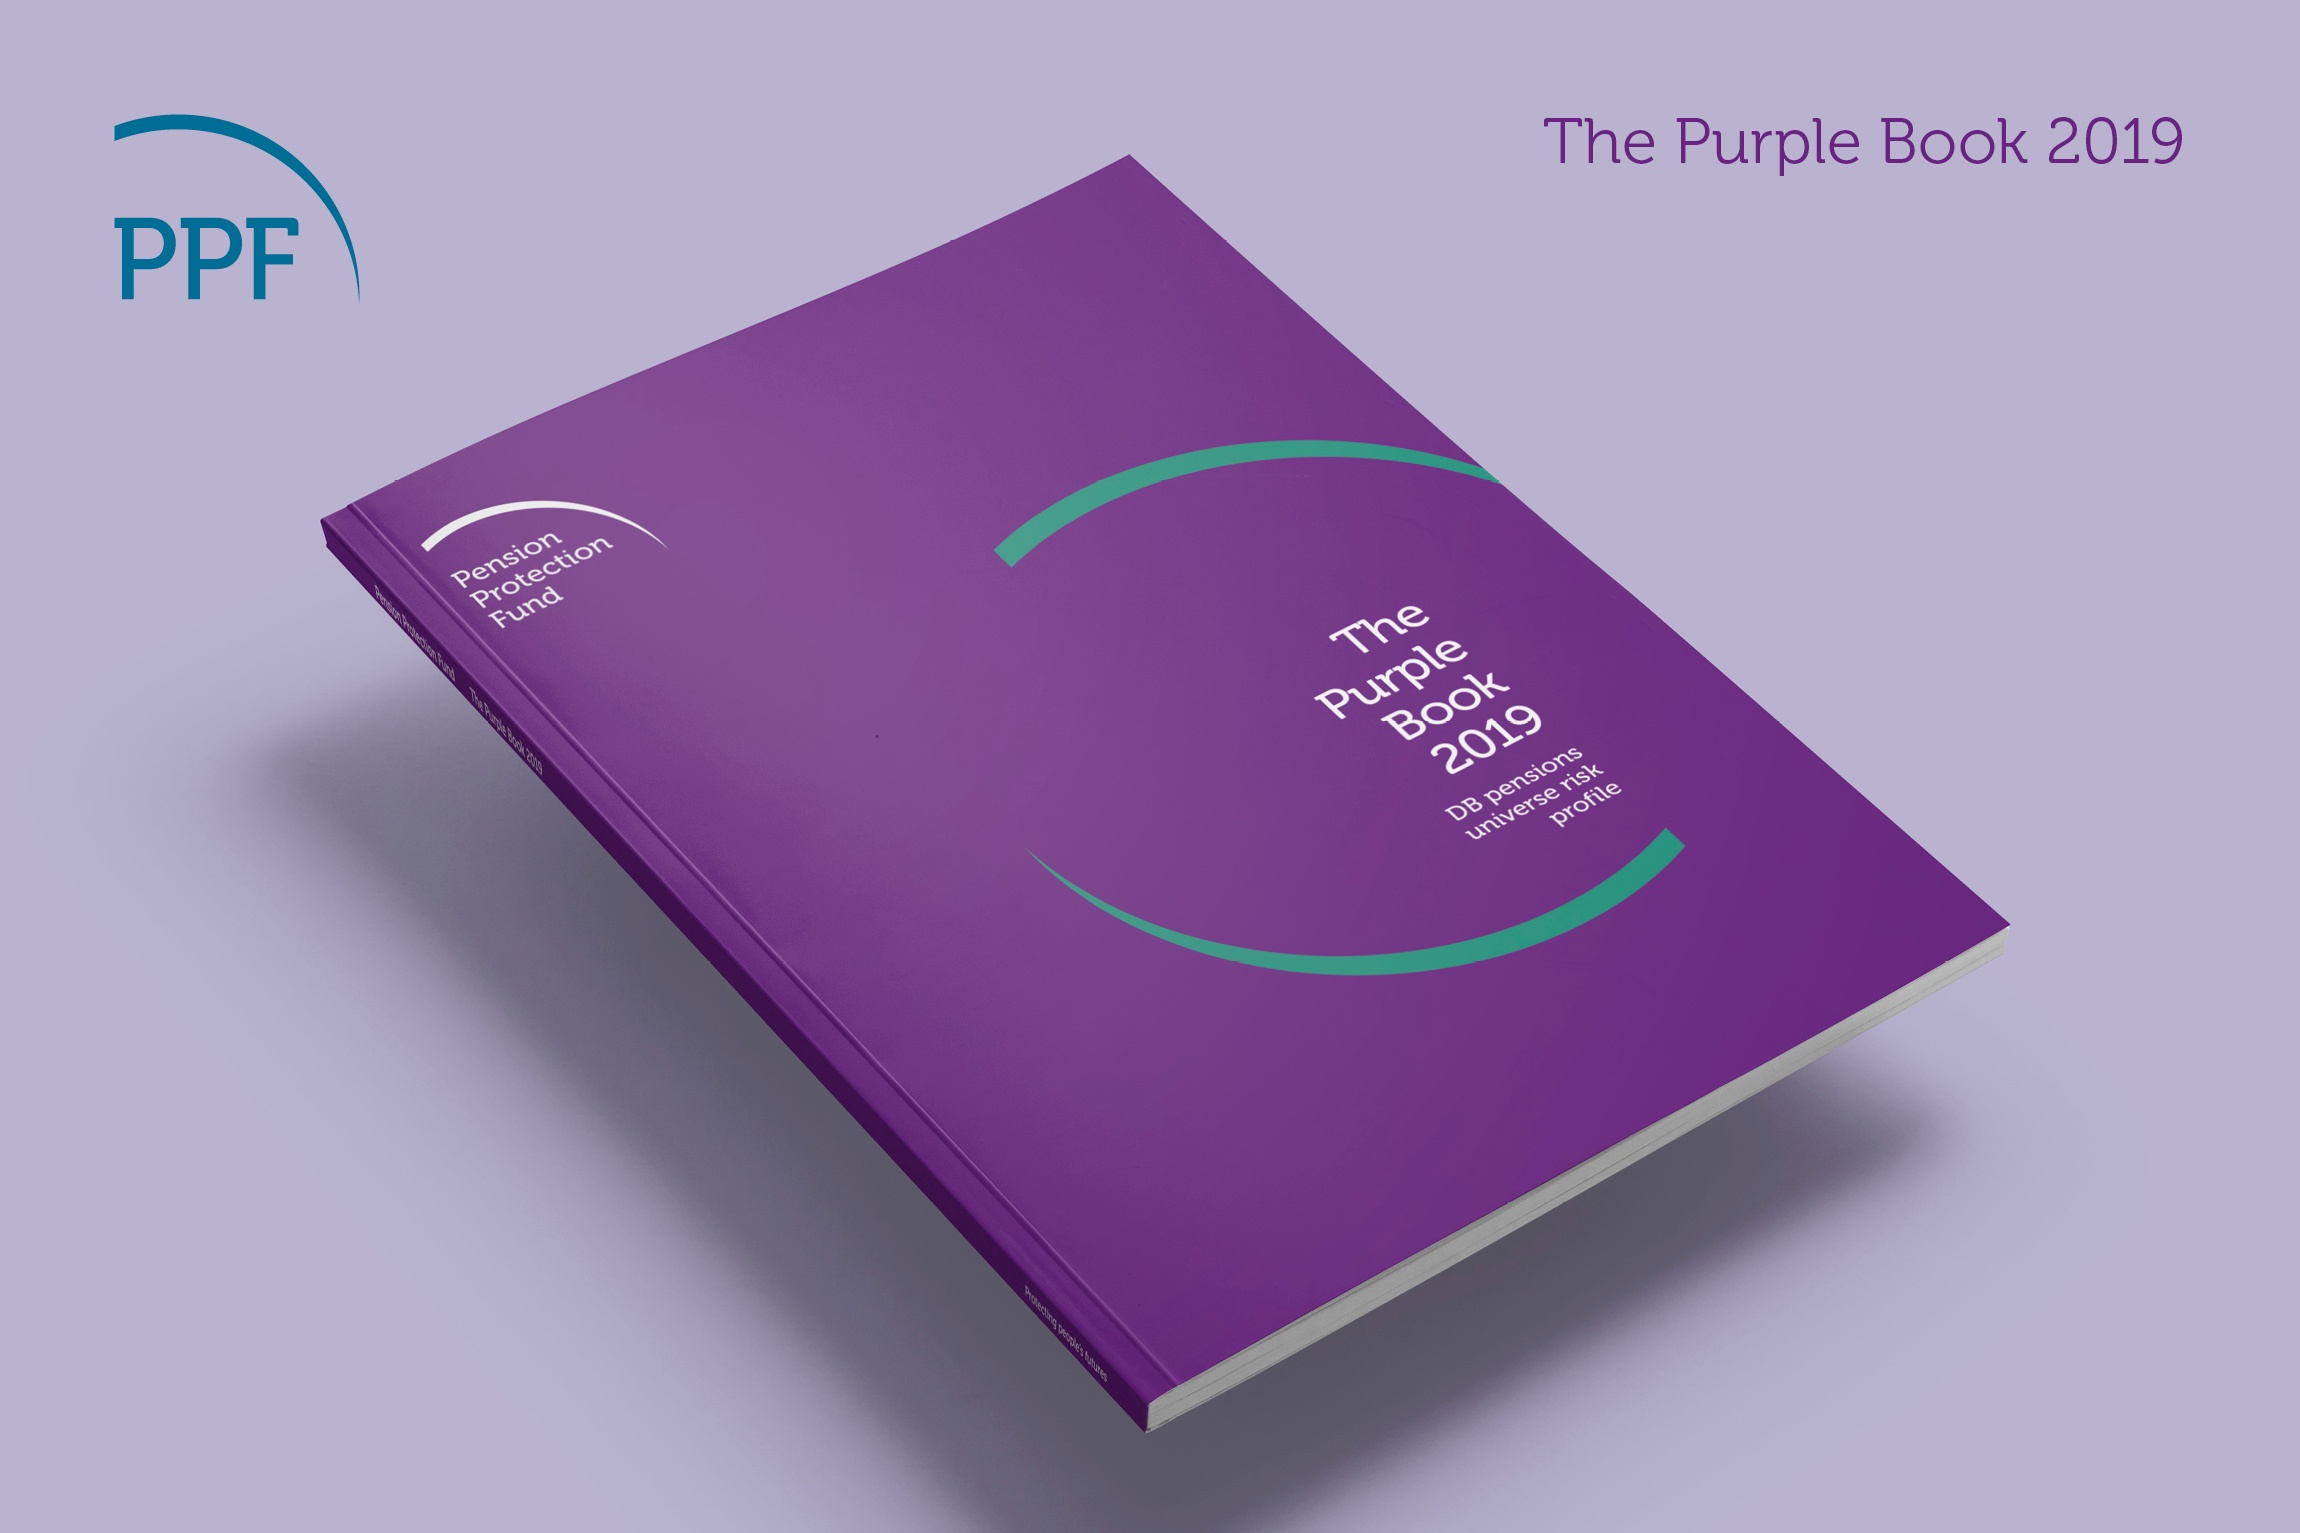 Latest DB scheme data pubished in the Purple Book